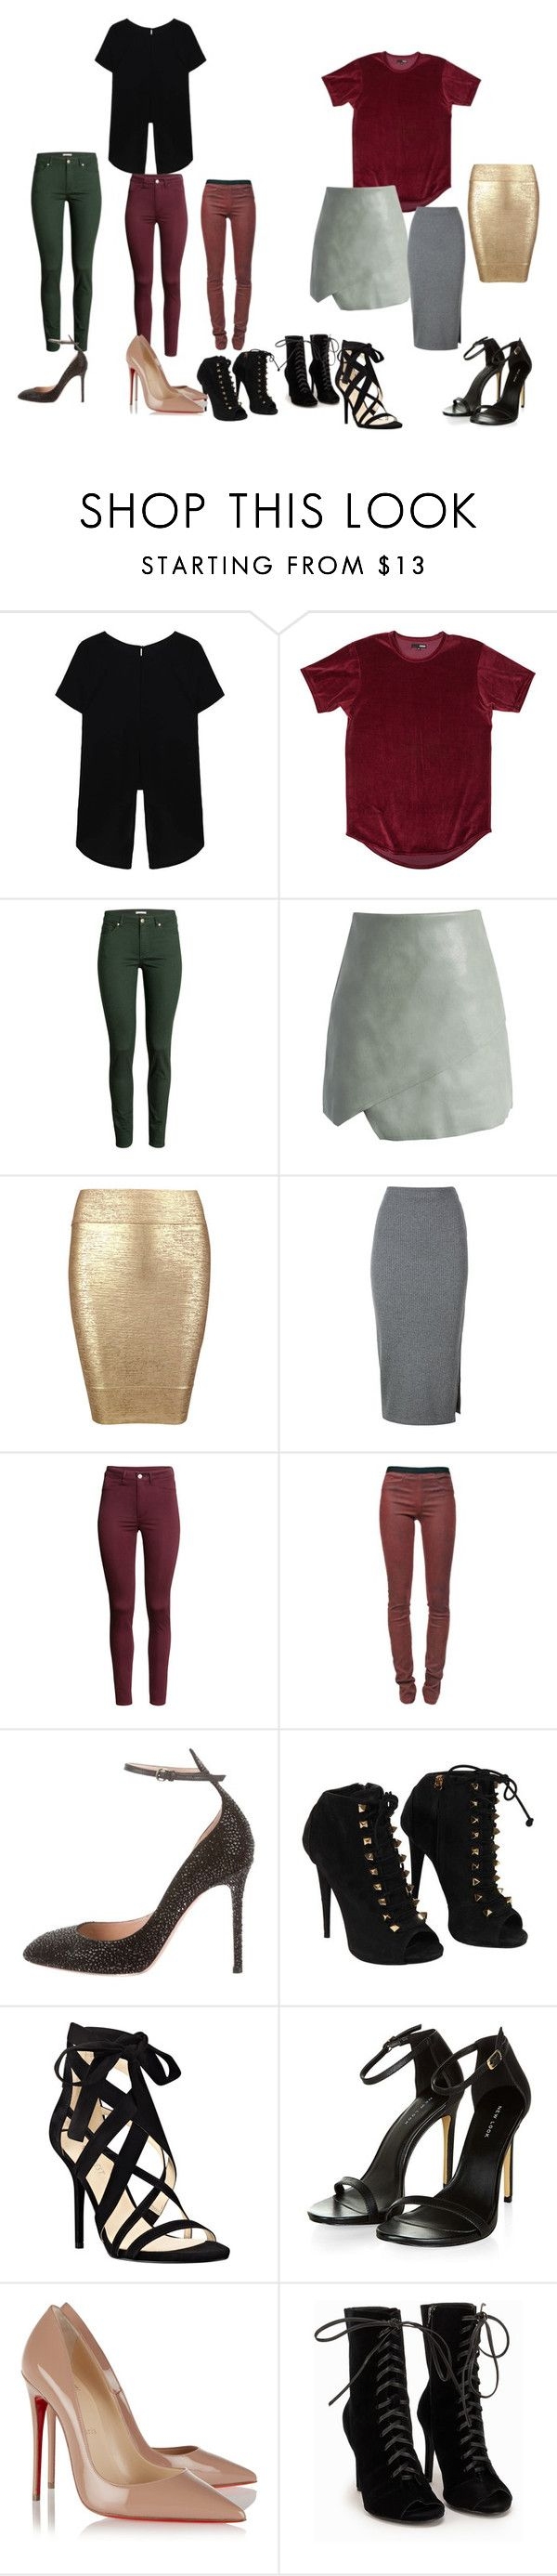 """Untitled #99"" by rosesanders on Polyvore featuring H&M, Chicwish, Posh Girl, Whistles, Helmut Lang, Valentino, Giuseppe Zanotti, Nine West and Christian Louboutin"